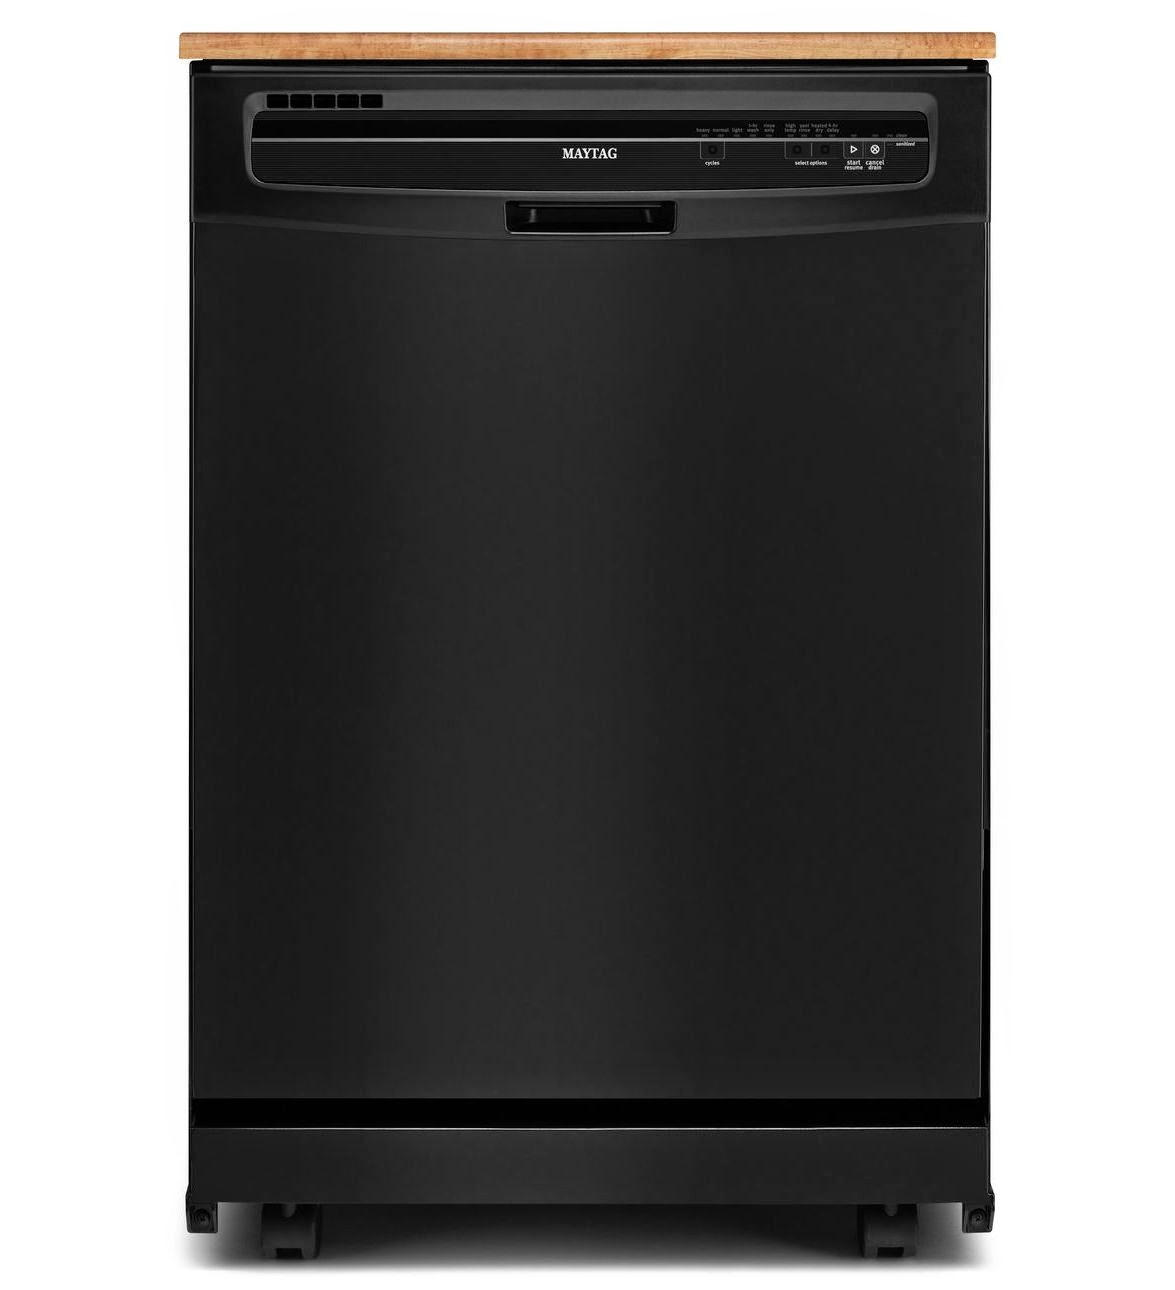 Maytag Portable Dishwasher Reviews